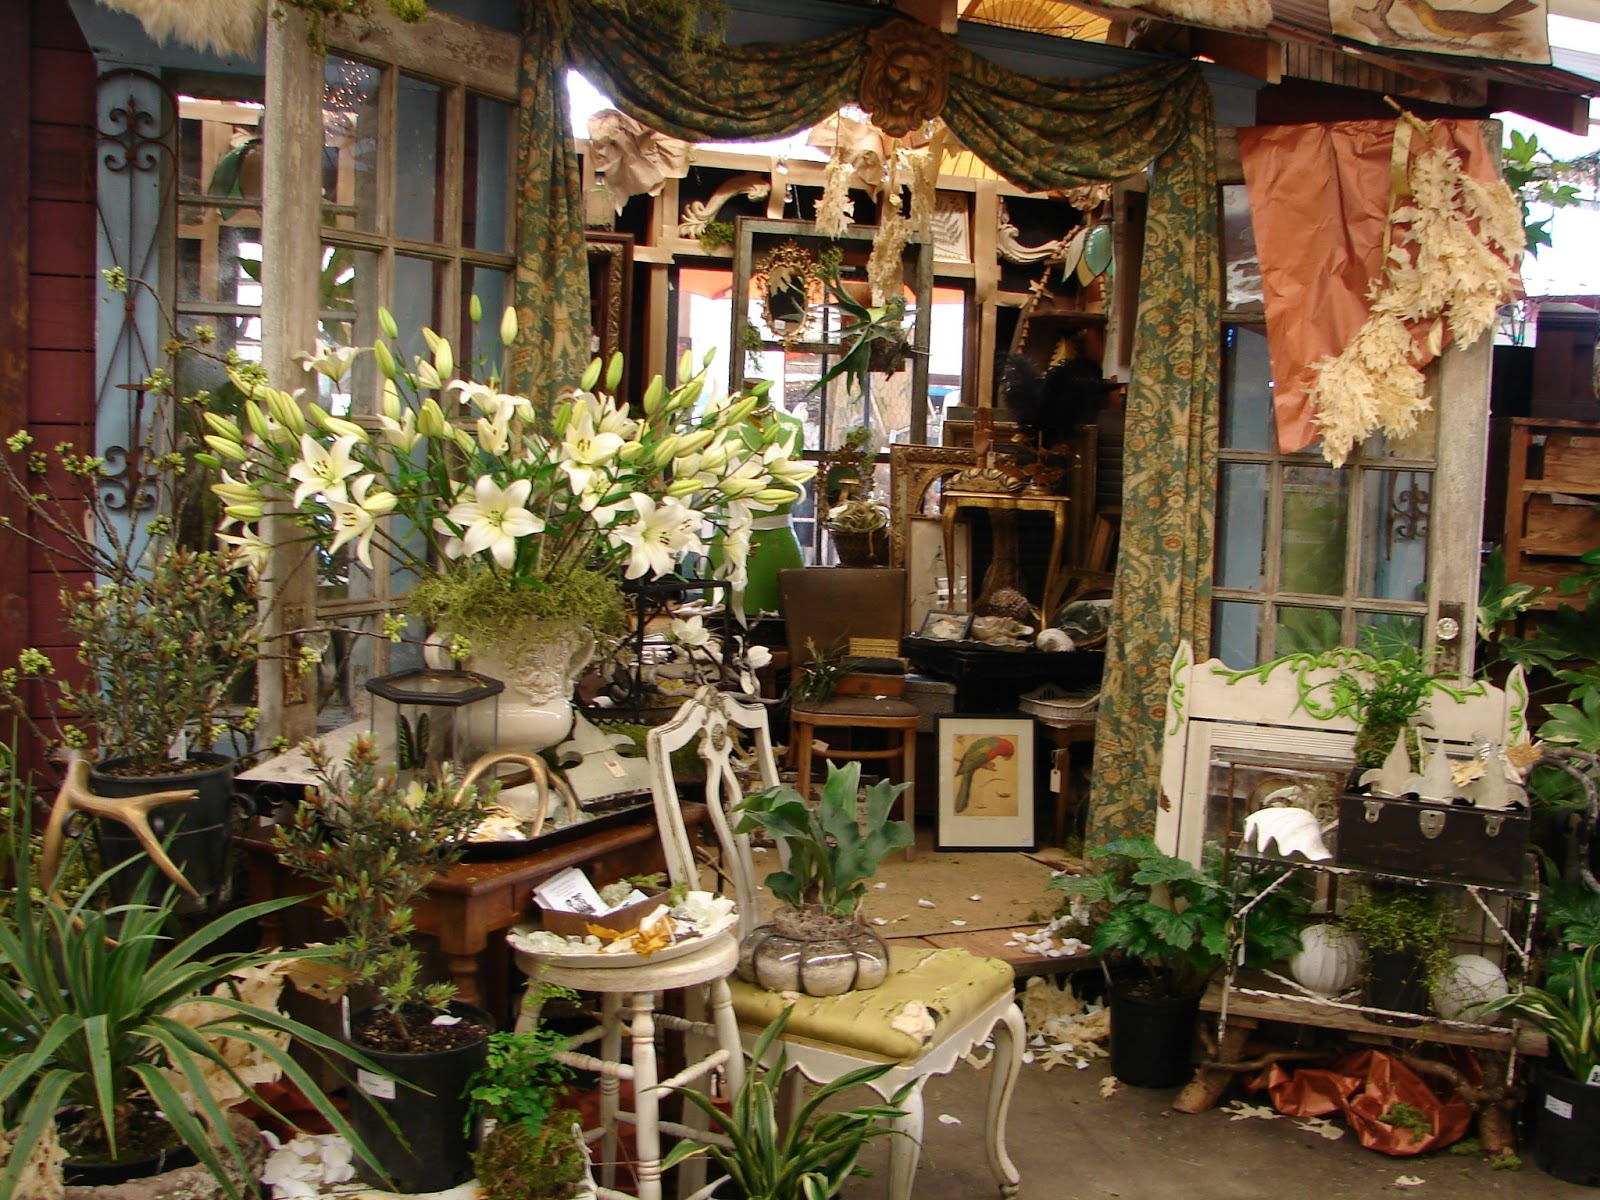 Monticello Antique Marketplace: 2013 Calendar of Events